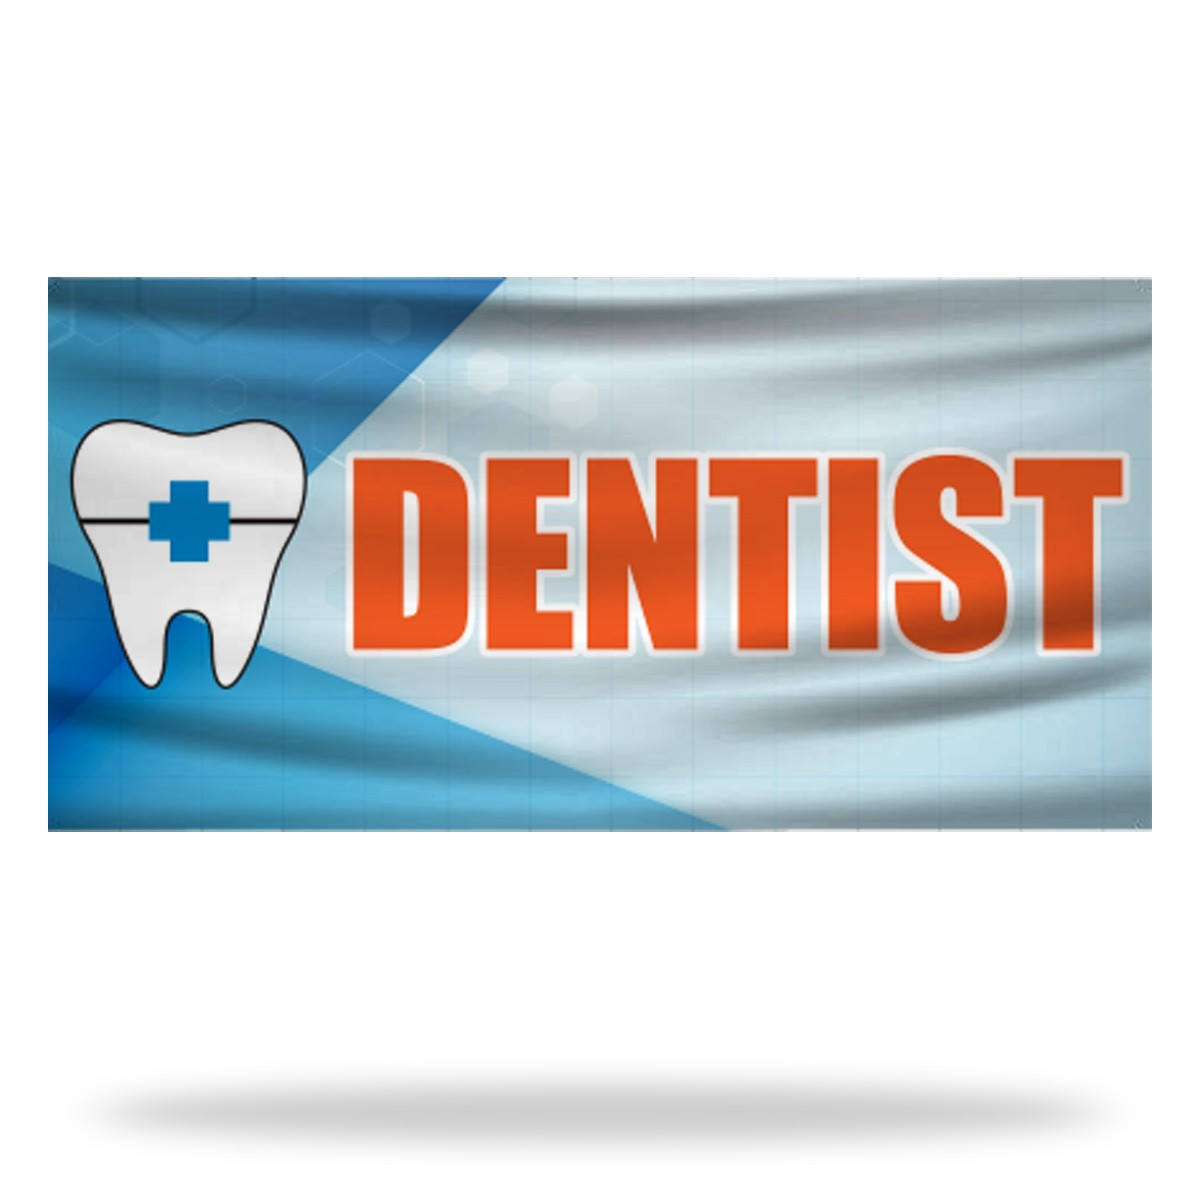 Dentist Flags & Banners Design 01